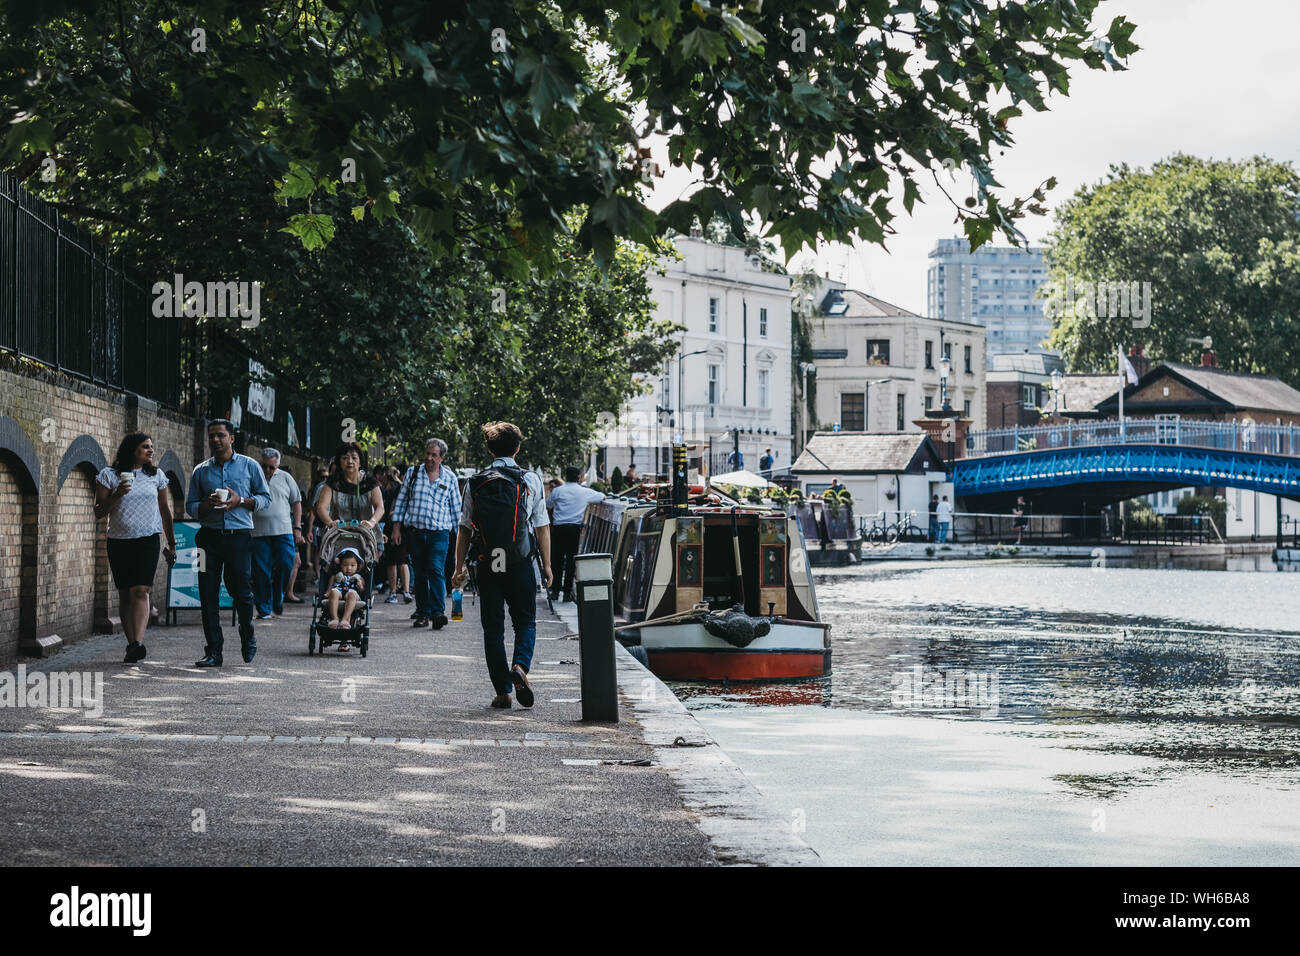 London, UK - July 18, 2019: People walking past boats on Regents Canal in Little Venice, London, a tranquil area of the city where the Grand Union and Stock Photo